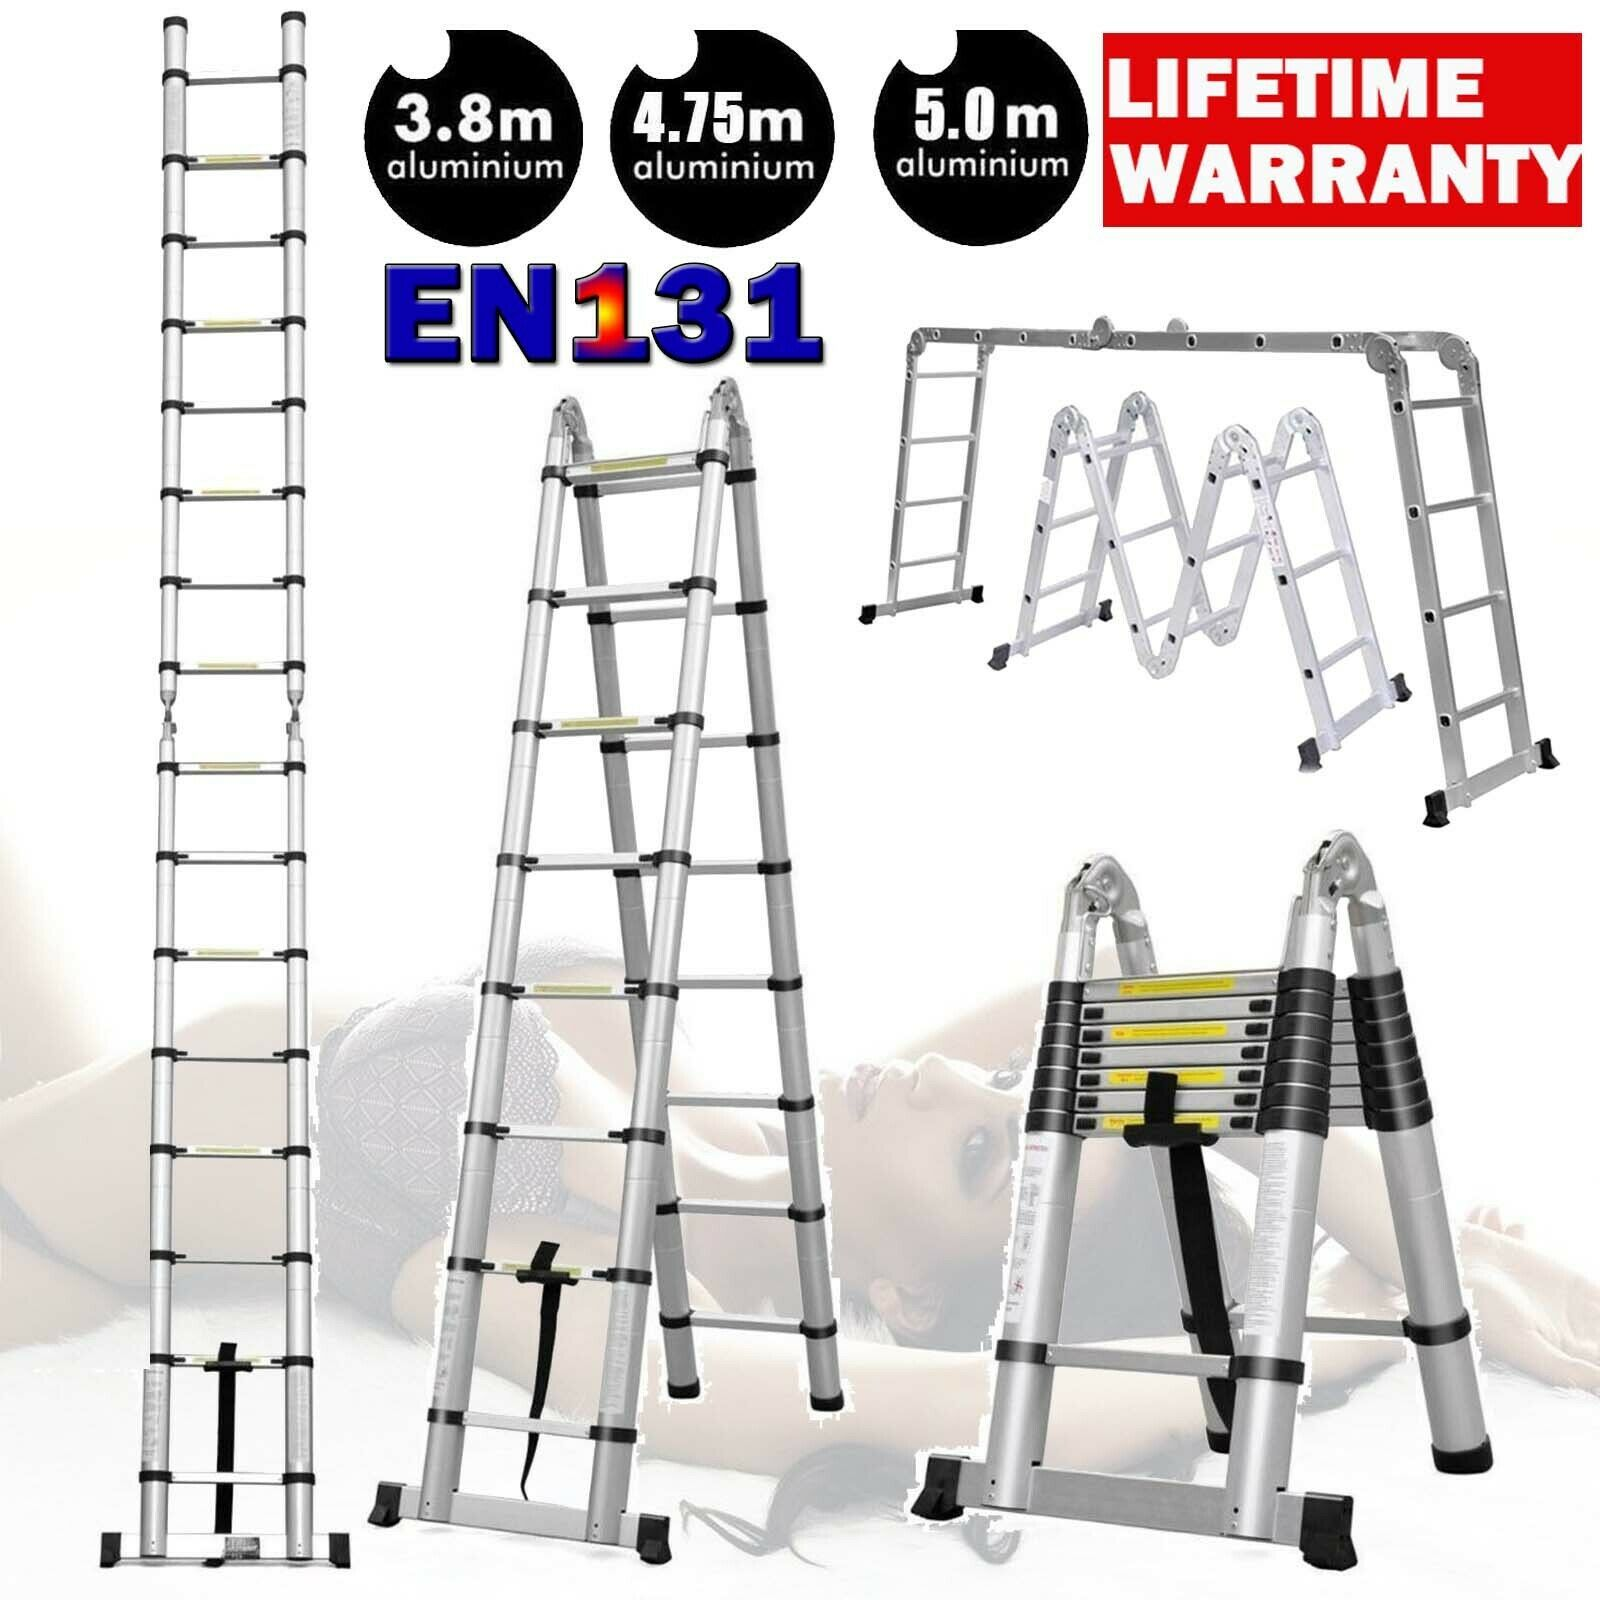 Scaffold Ladder Heavy Duty Giant Aluminum 10 17 Feet 330lb Multi Purpose Extend In 2020 Multi Purpose Ladder Telescopic Ladder Aluminium Ladder